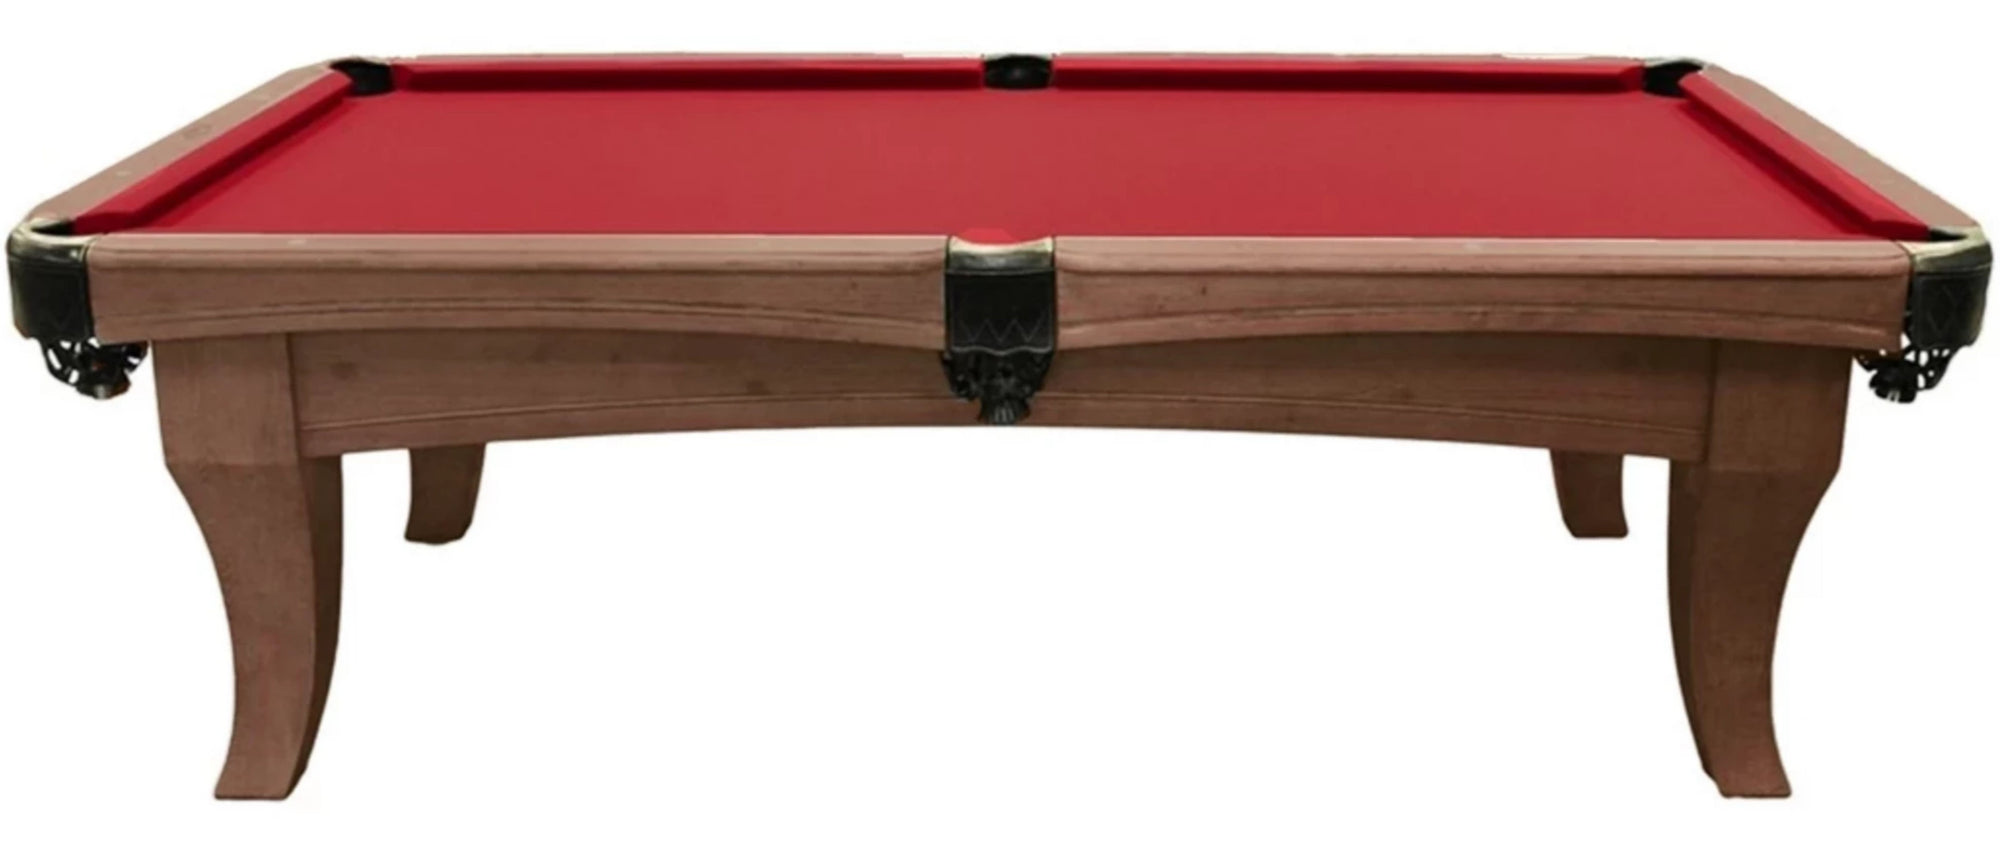 THE CHATHAM POOL TABLE